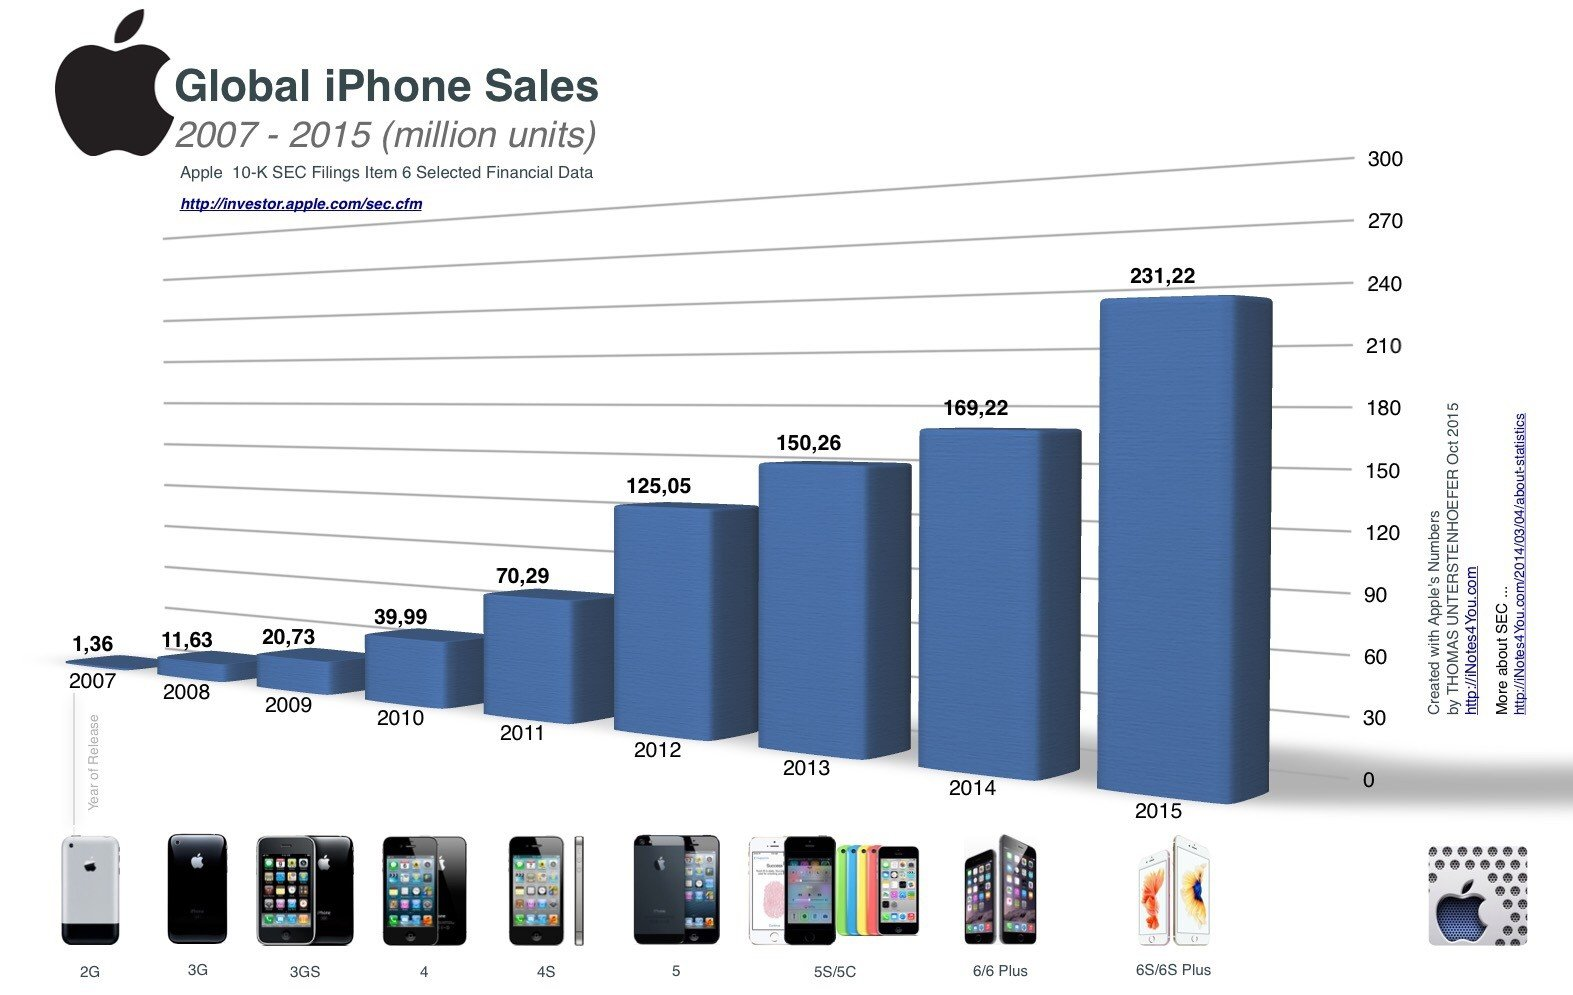 iphone-sales-history-in-a-picture_00